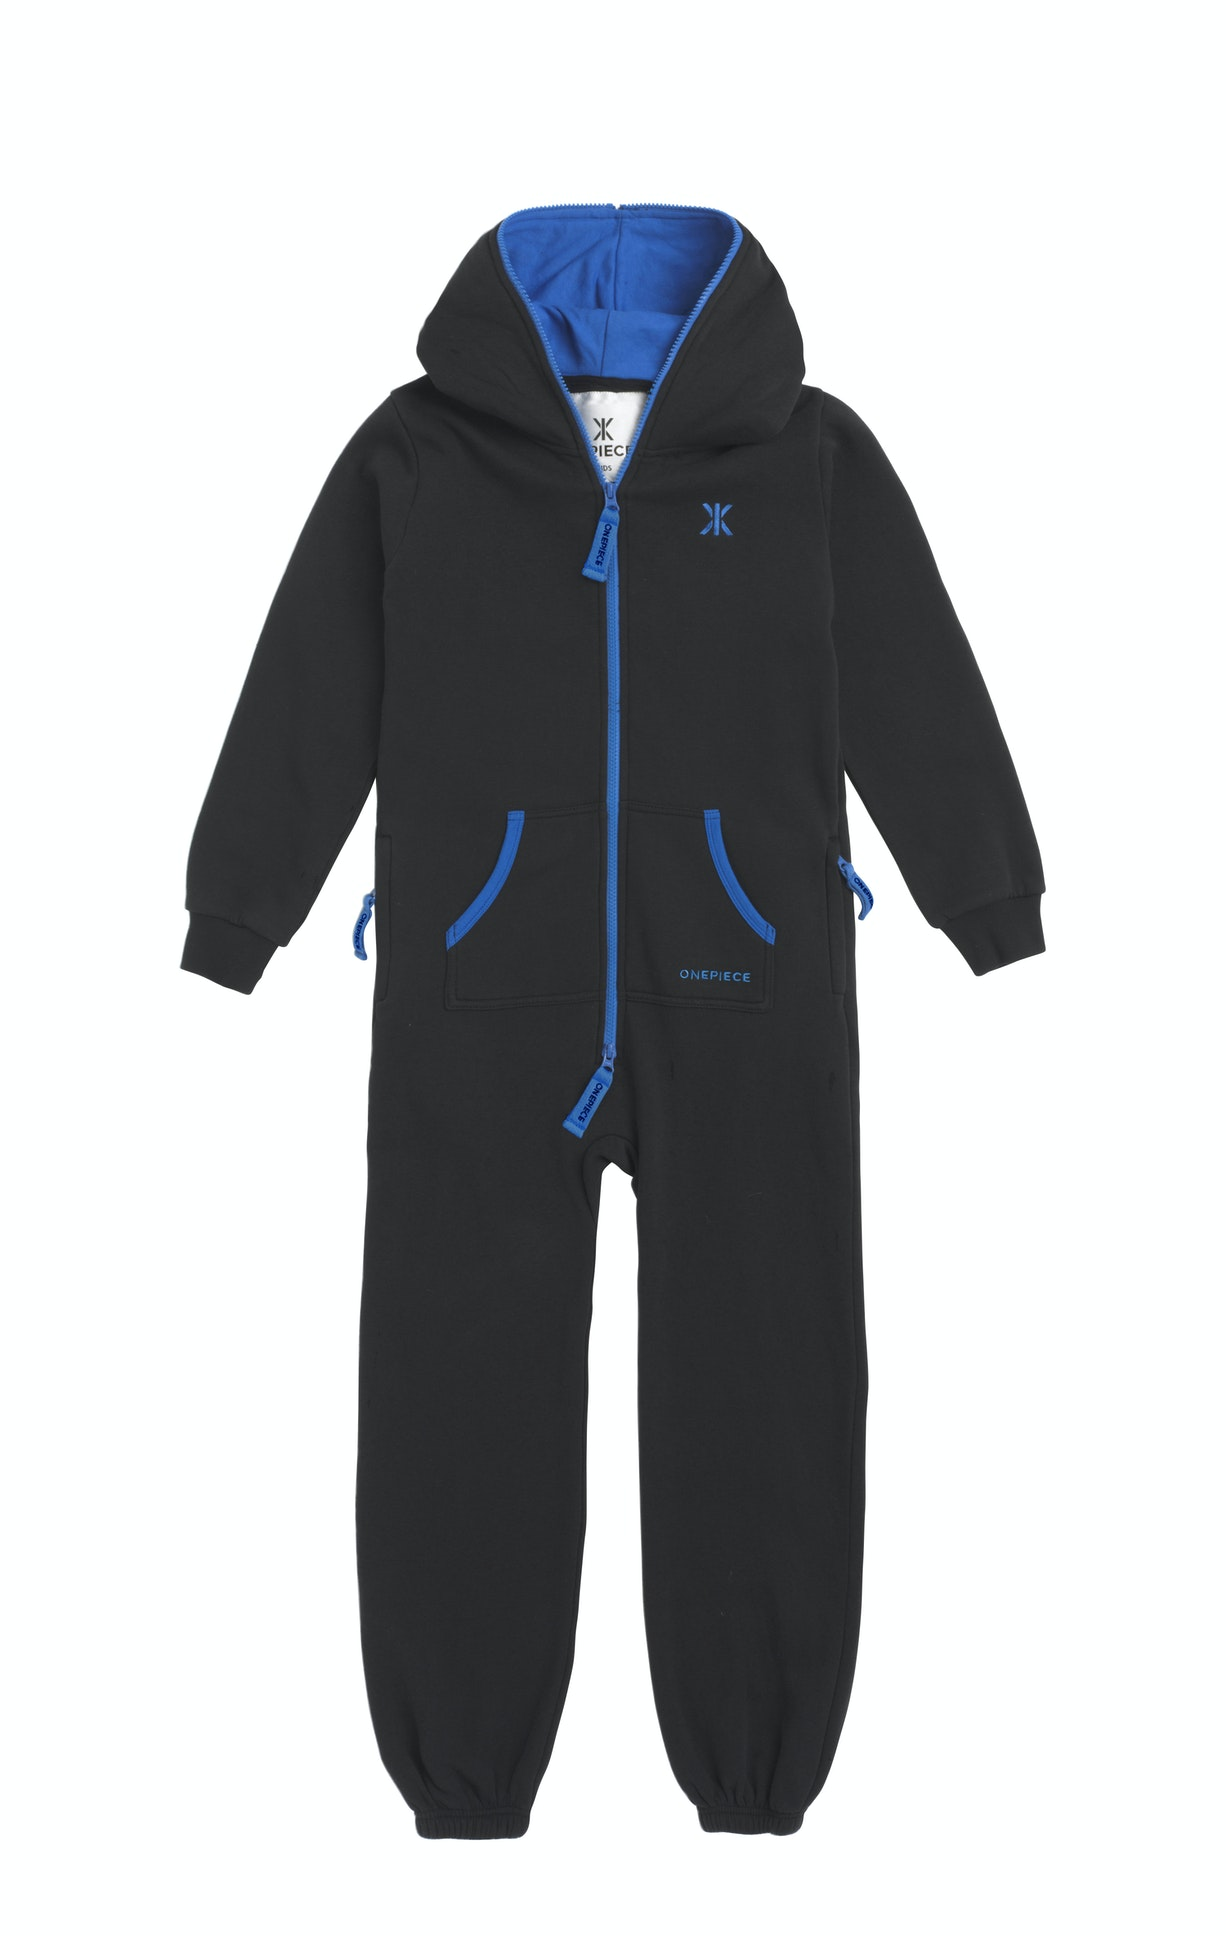 Solid Kids Jumpsuit Black The Solid Kids Jumpsuit is made of super soft premium cotton with a two-way zipper starting from the crotch to the end of the hood.